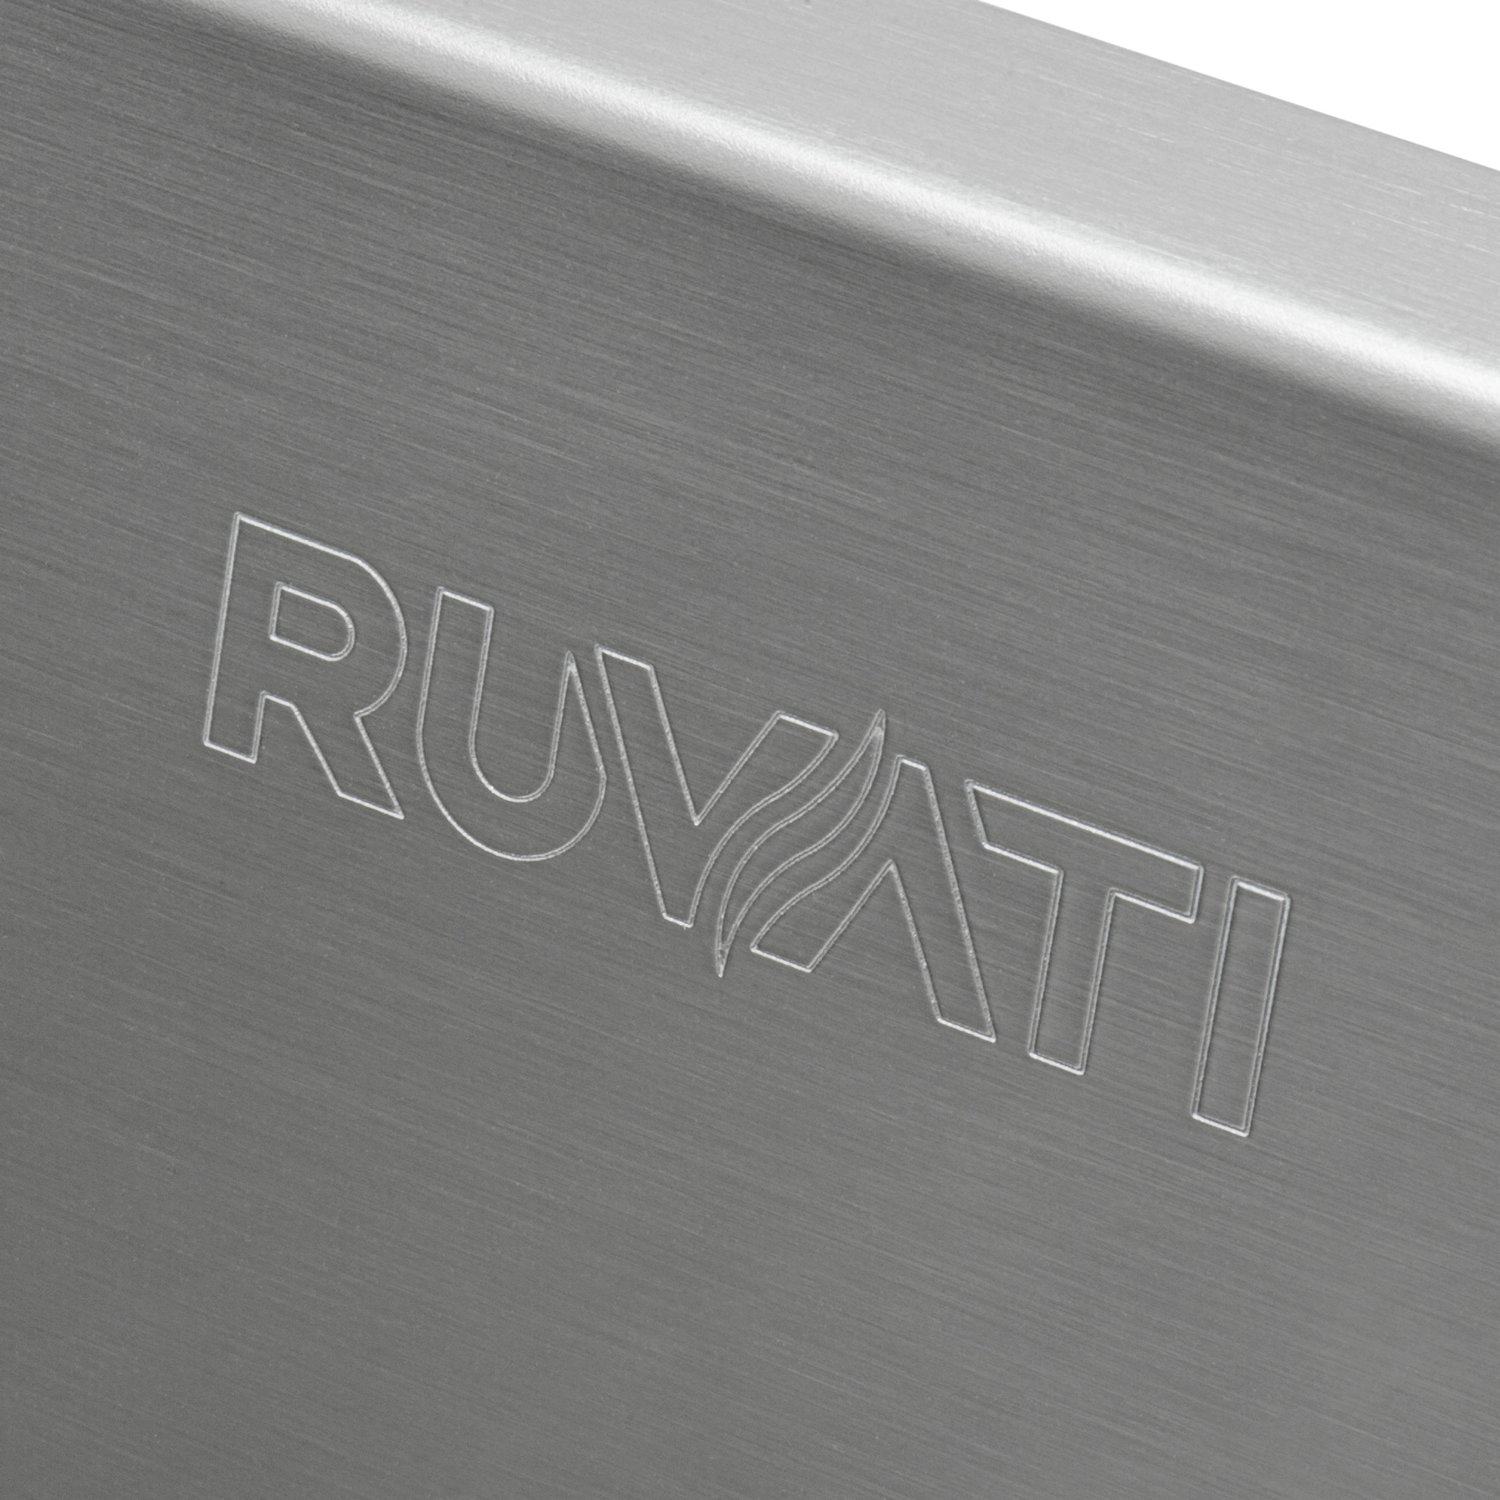 Ruvati 15 x 20 inch Drop-in Topmount Bar Prep Sink 16 Gauge Stainless Steel Single Bowl - RVH8110 by Ruvati (Image #9)